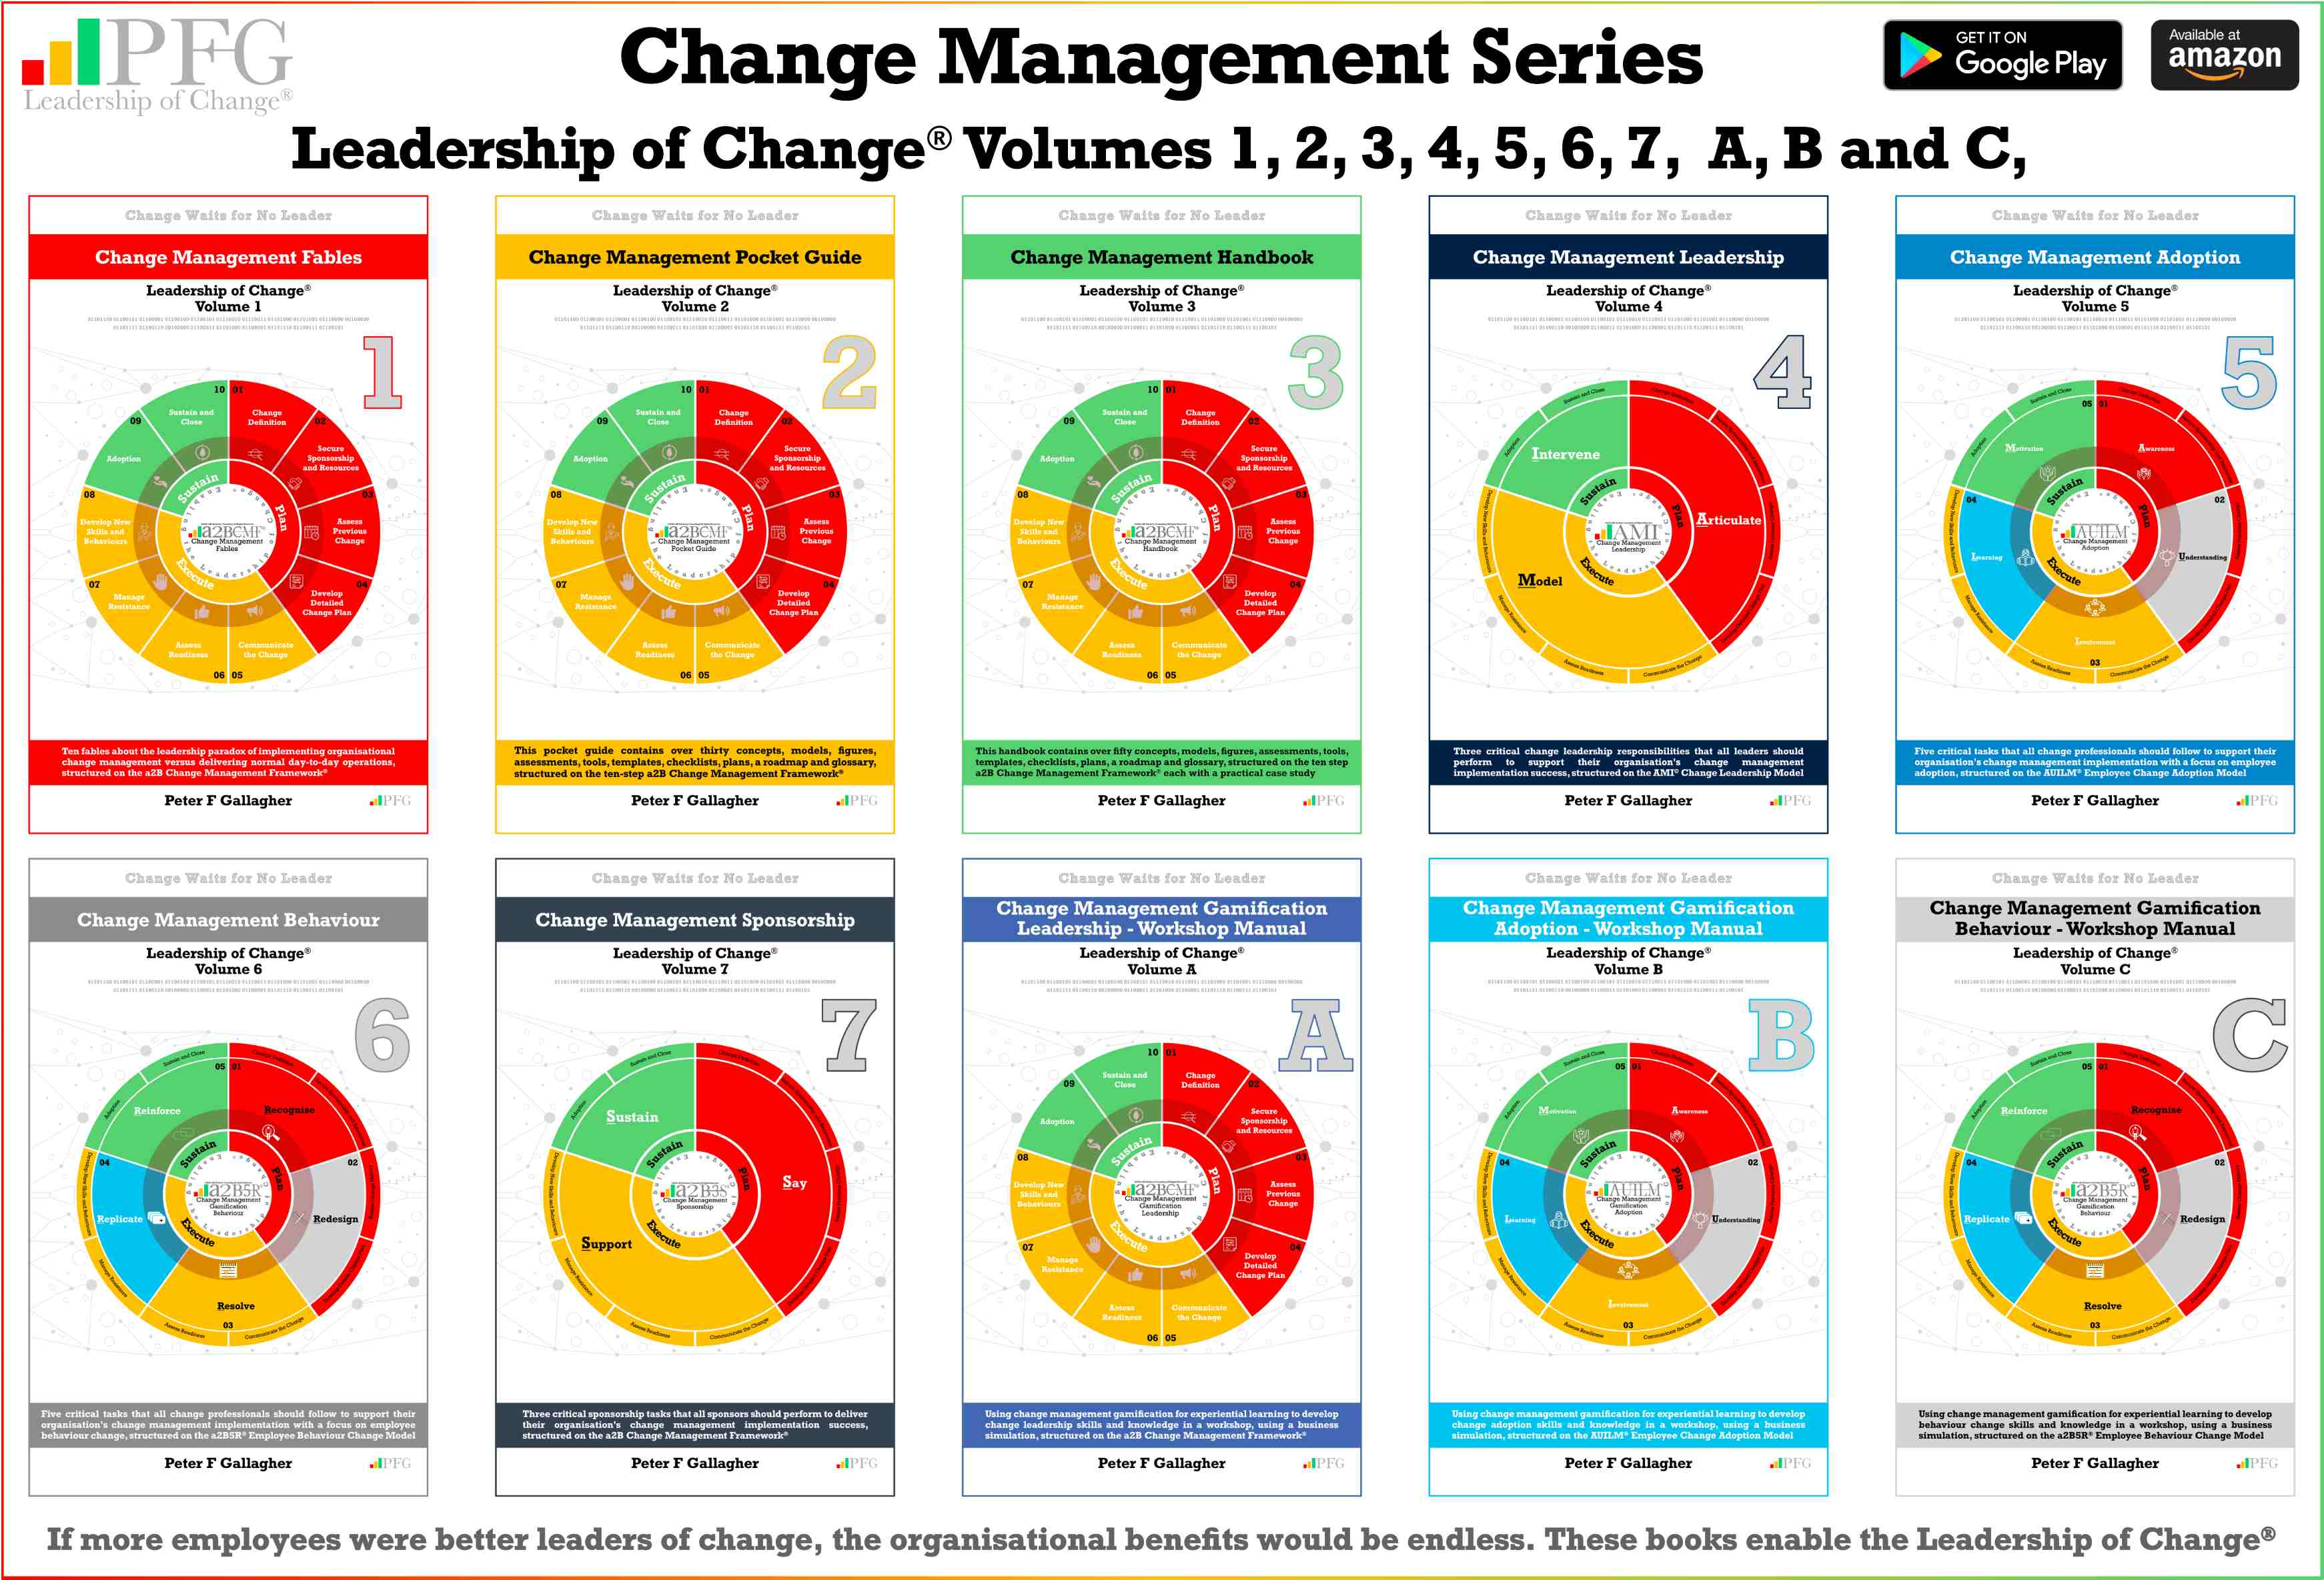 Change Management Books, Change Management Books Leadership of Change Volumes 1 2 3 4 5 6 7 A B C, C